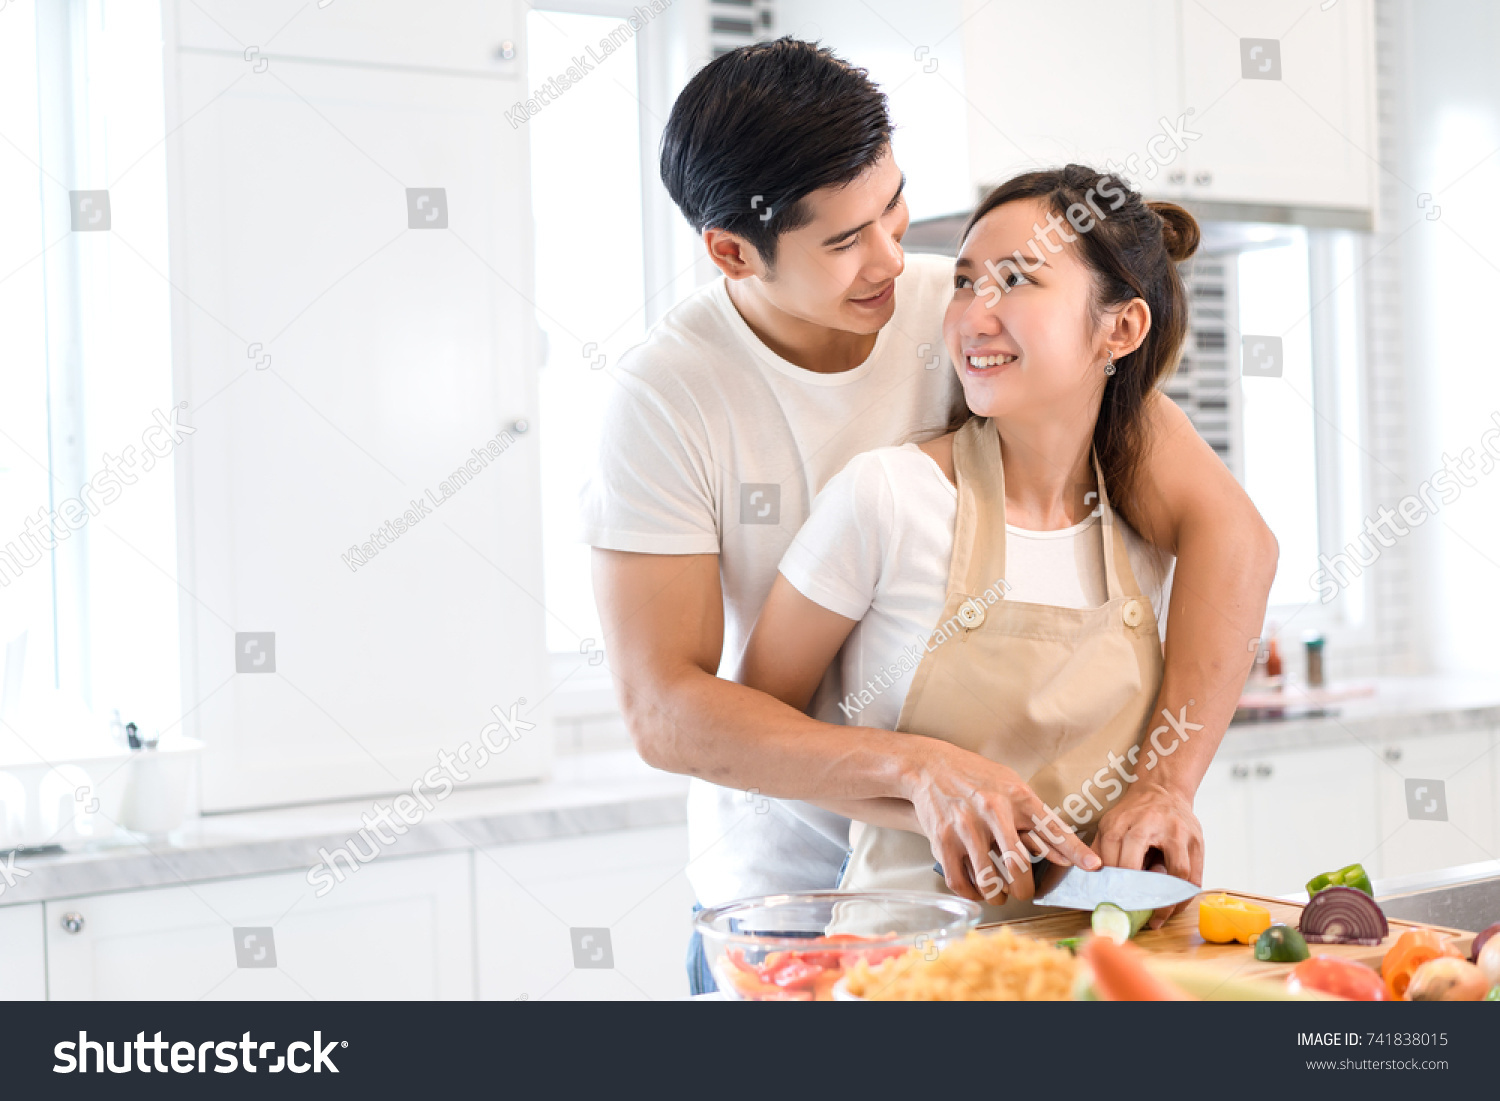 Couple Cooking Food Kitchen Room Young Stock Photo & Image (Royalty ...